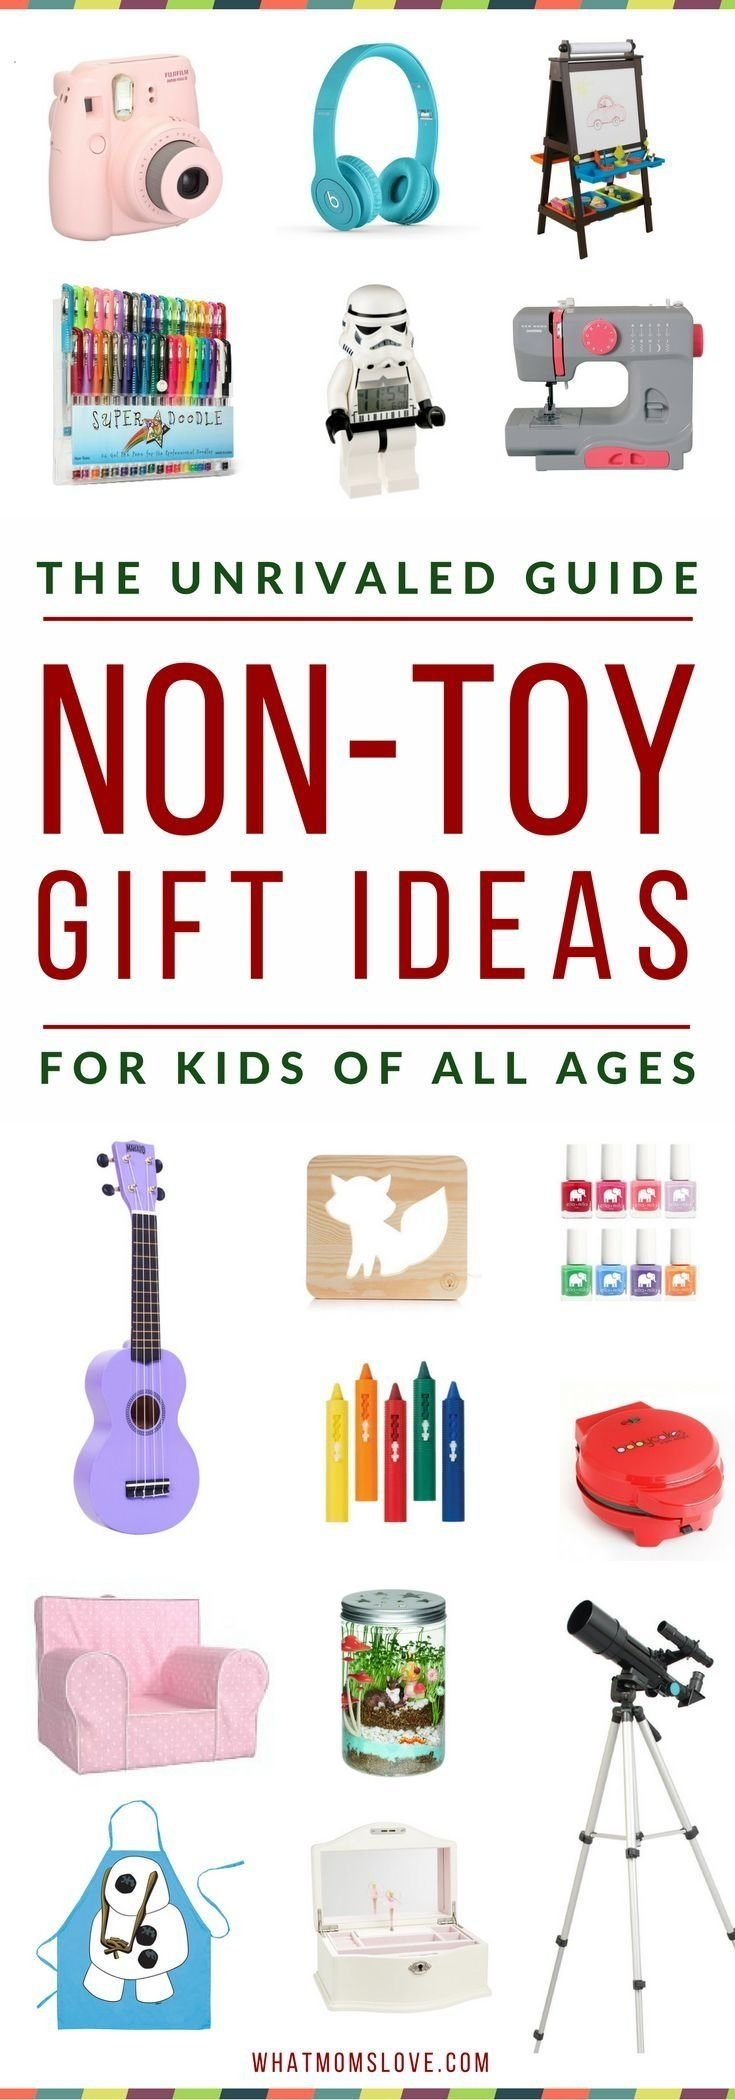 10 Lovable Gift Ideas For 10 Year Old Birthday Girl 183 best best gifts for 10 year old girls images on pinterest 2021